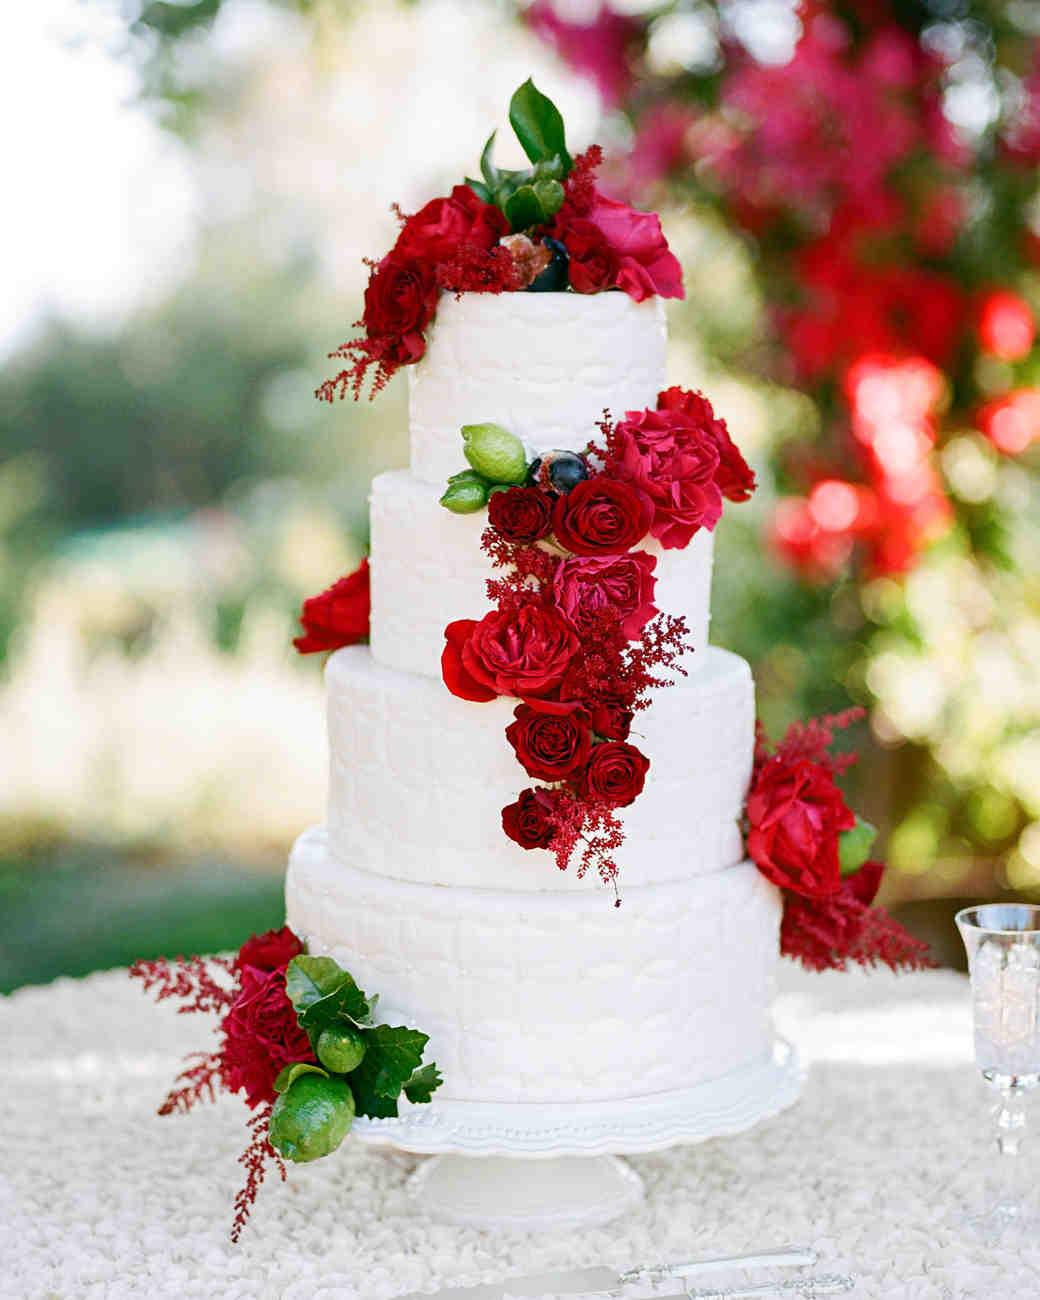 White Wedding Cake with Bright Crimson Flowers and Green Limes